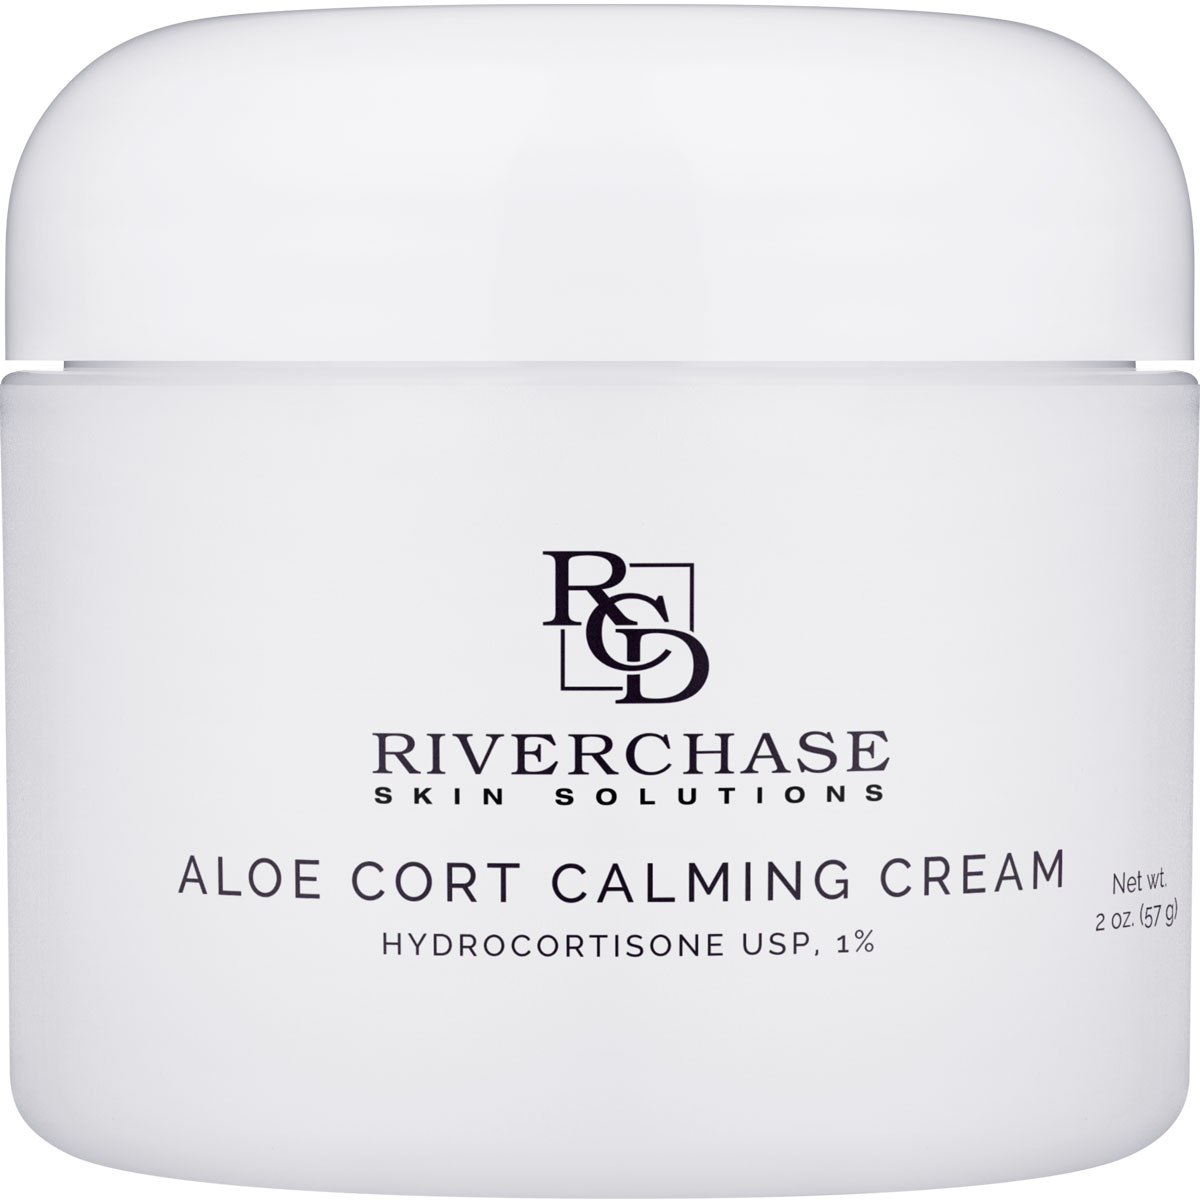 Aloe Cort Calming Cream